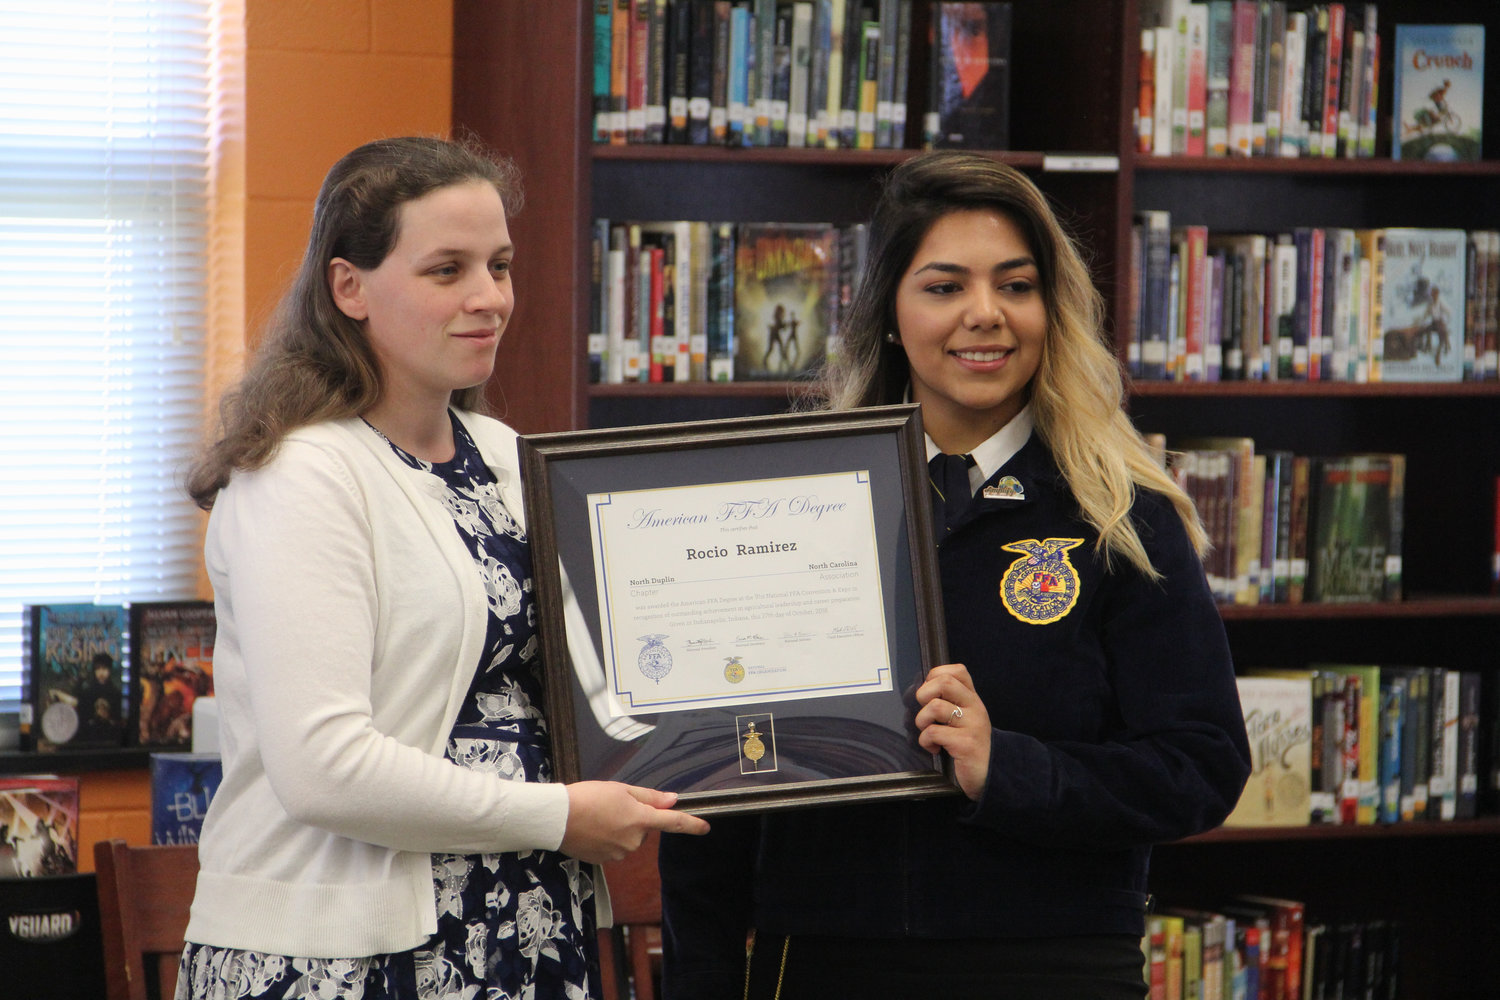 Rocio Ramirez (right) standing with North Duplin FFA Advisor Lynn Marshburn. Ramirez is only the fifth North Duplin alum to receive their American Degree and she becomes the first female North Duplin alum to do so.